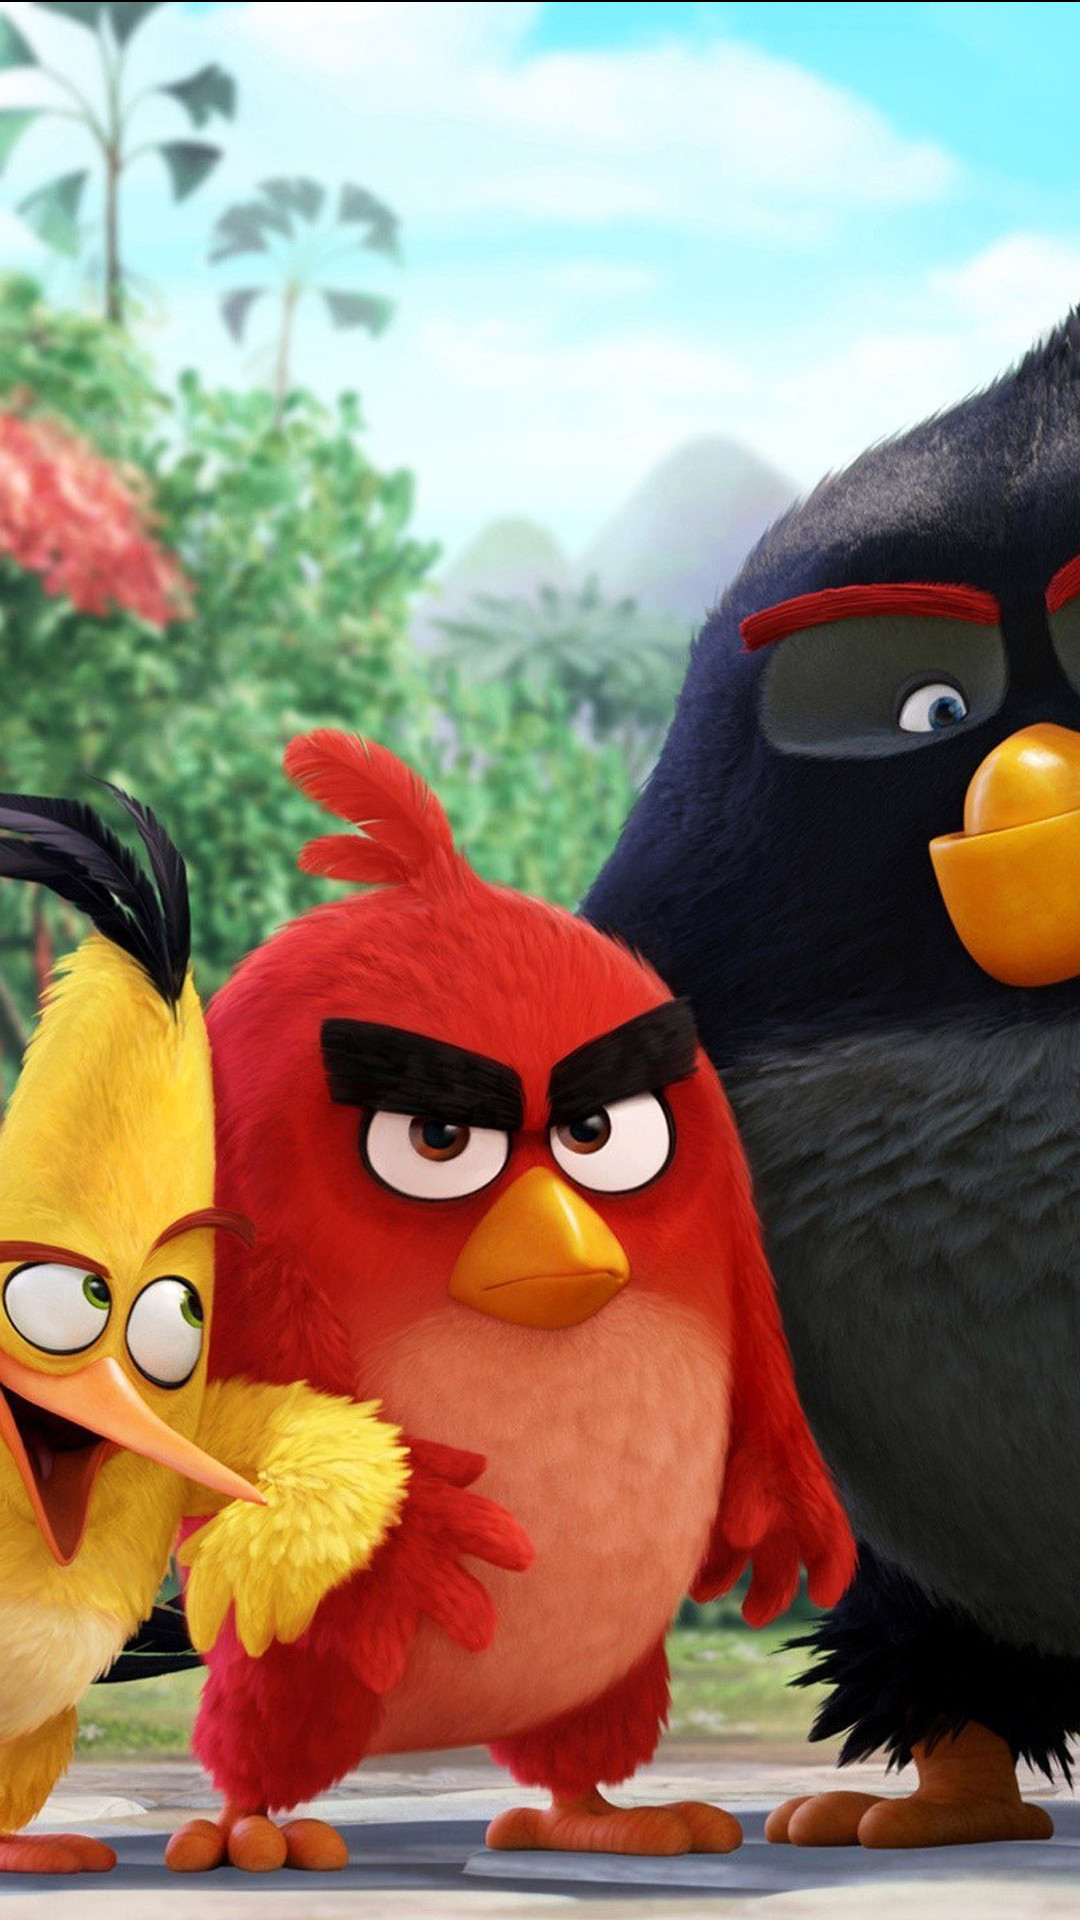 1920x1200 Angry Birds Wallpaper